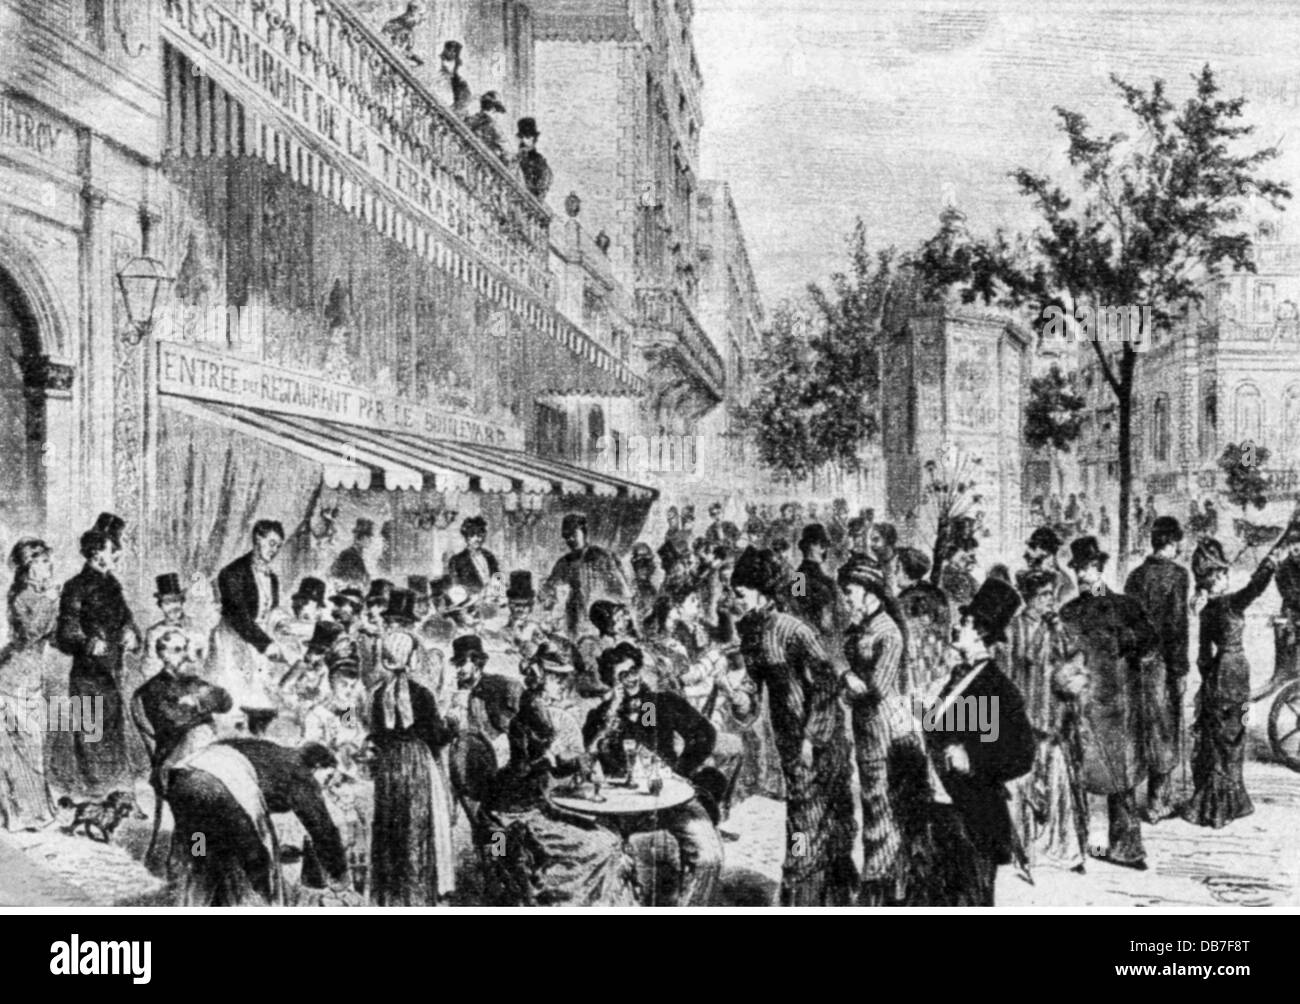 gastronomy, cafes / street cafes, in front of a Parisian coffeehouse, wood engraving, 19th century, 19th century, - Stock Image